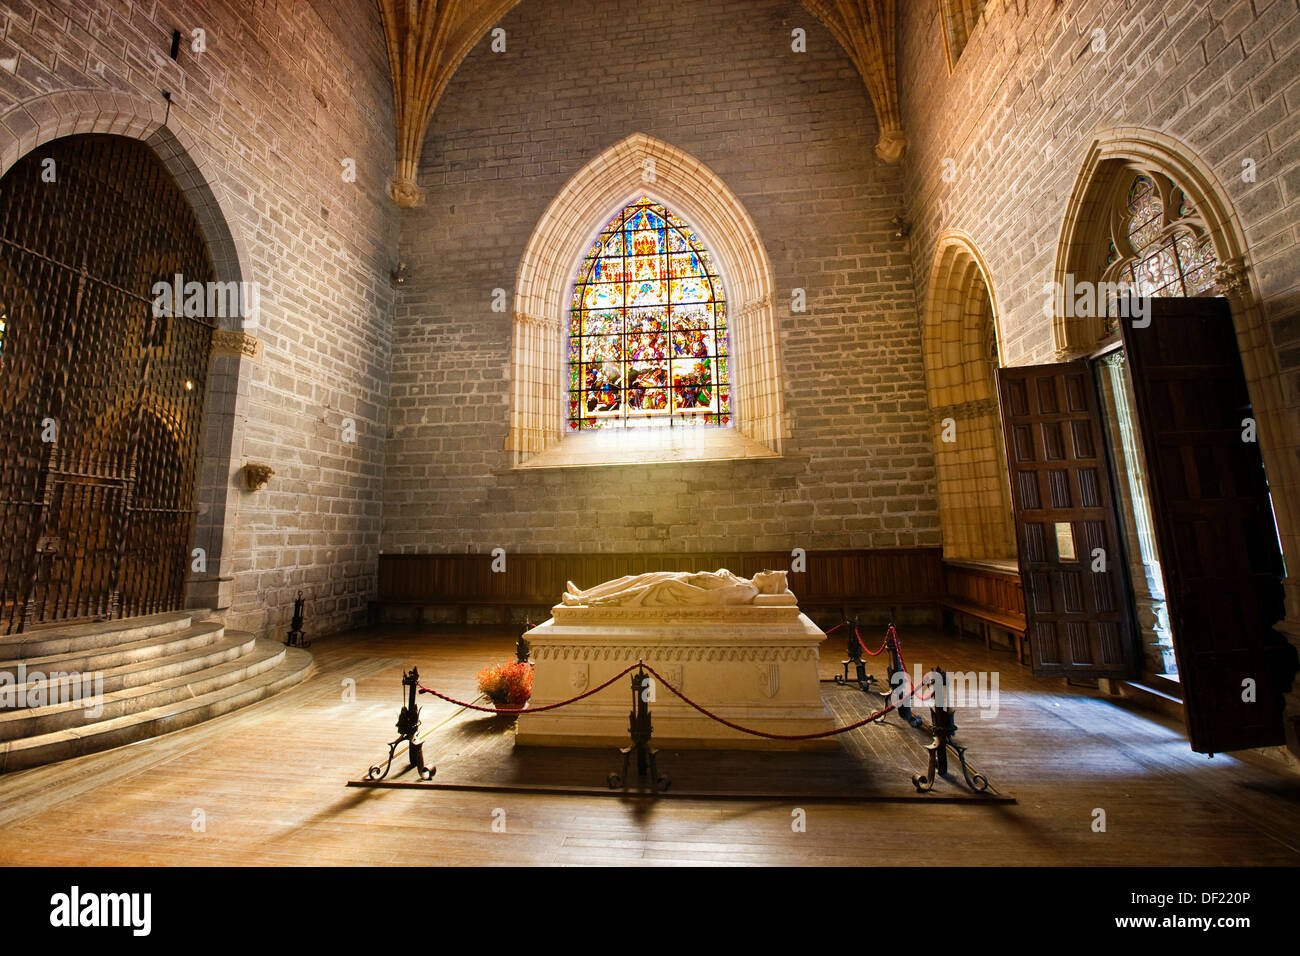 Sepulchre of Sancho VII the Strong in St Mary´s collegiate church, Roncesvalles. Way of St James, Navarra, Spain - Stock Image